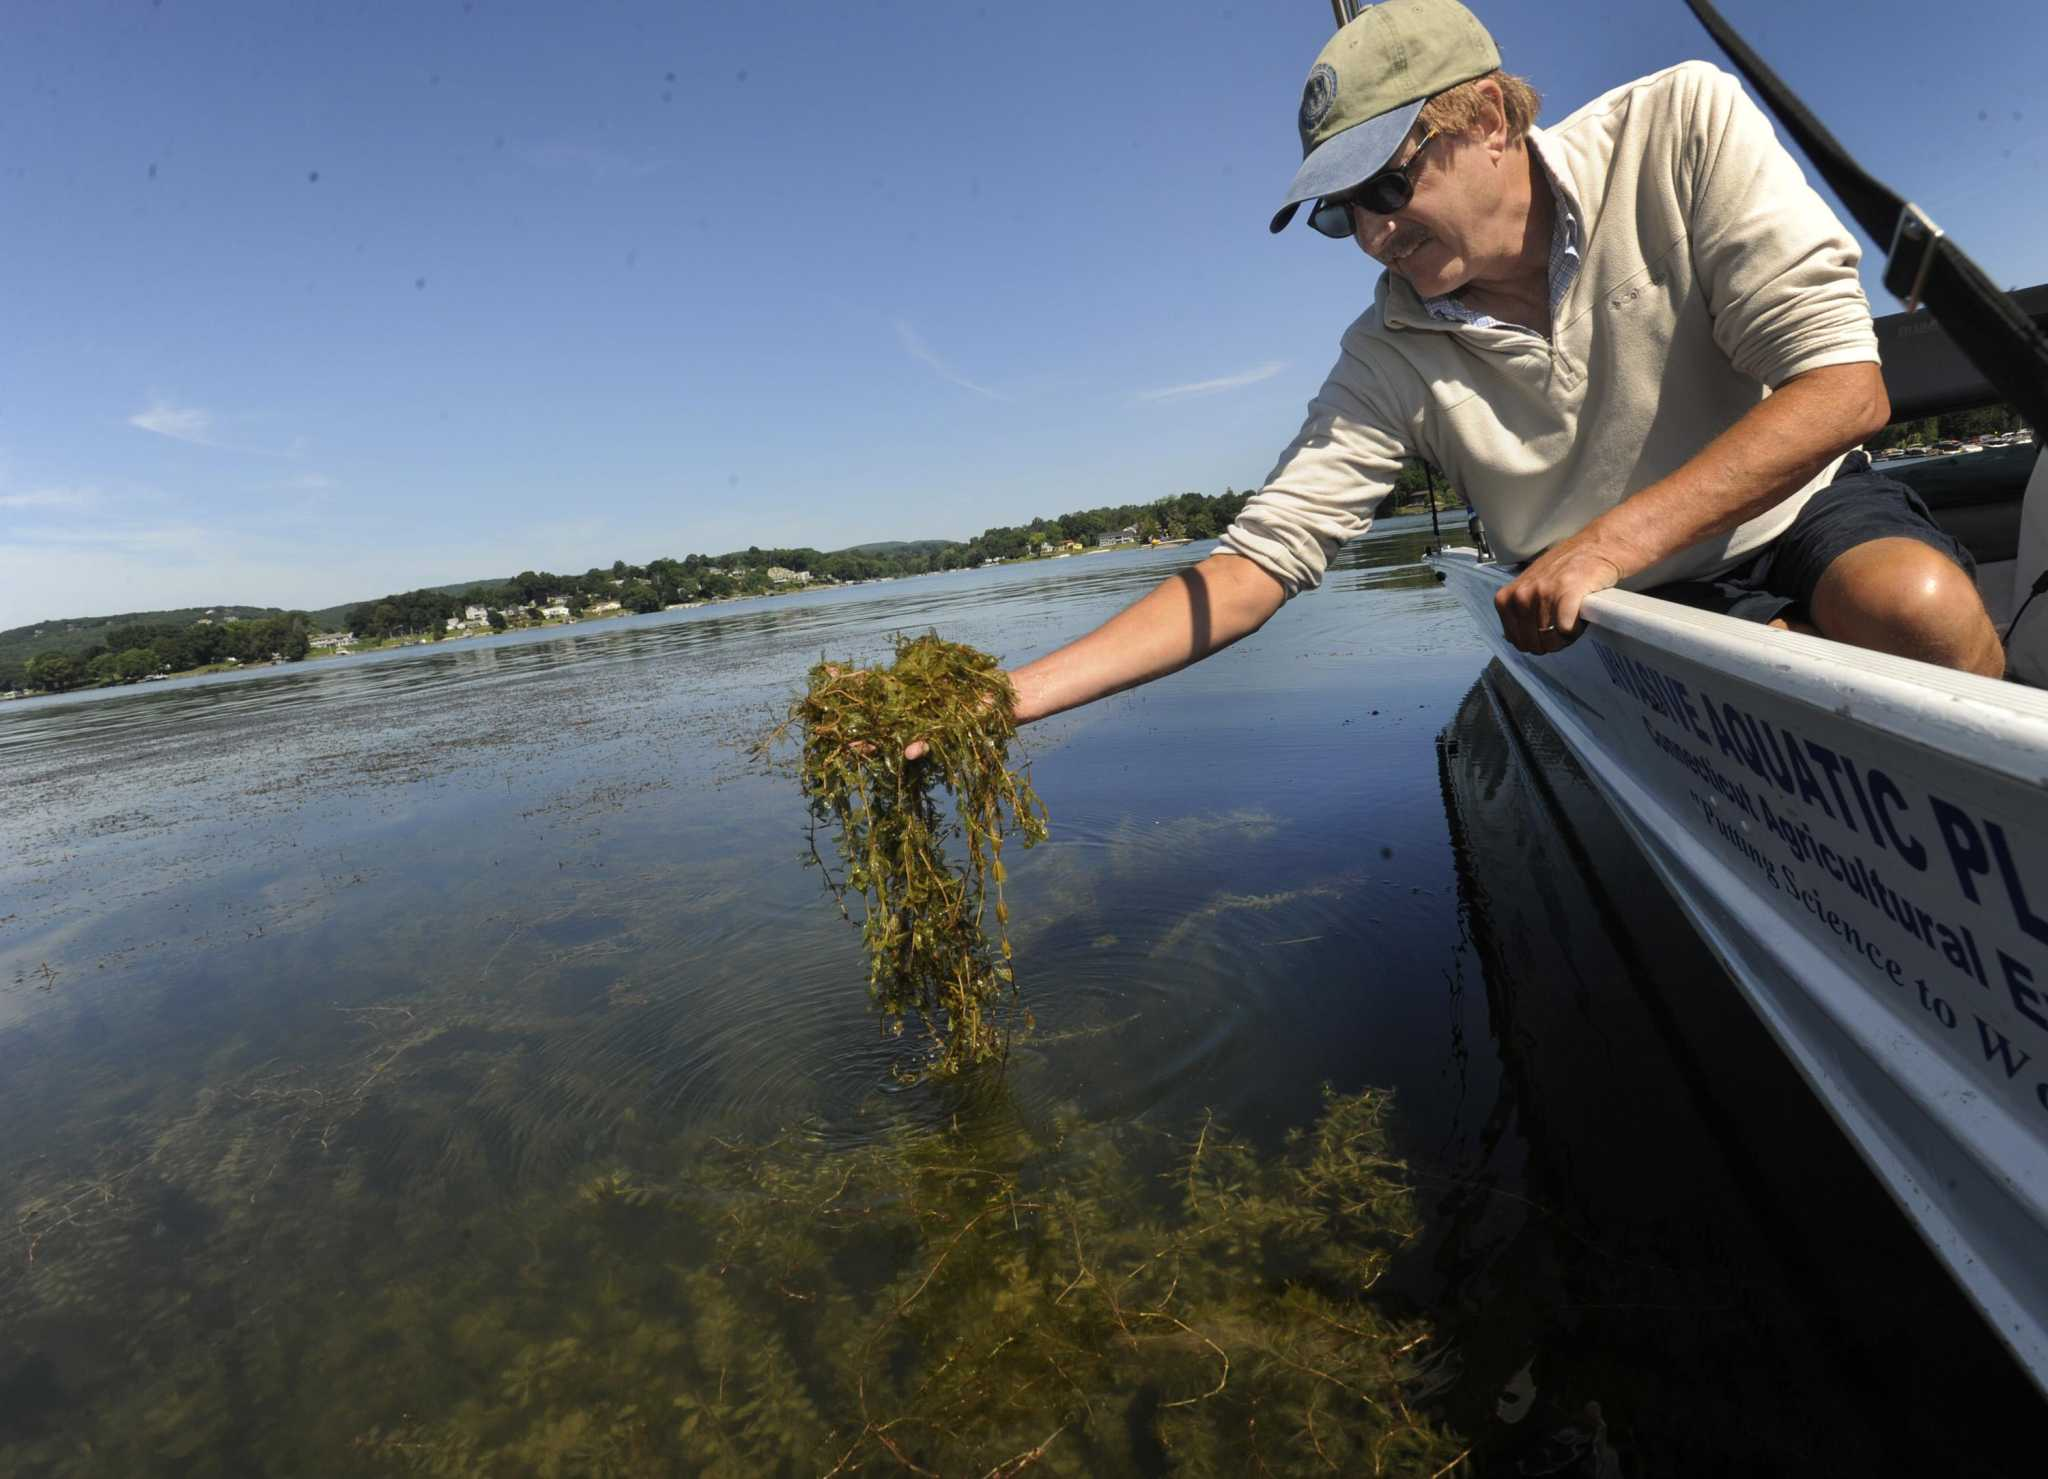 State grant money will go toward combatting invasive species in Candlewood Lake and other CT waters - Danbury News Times